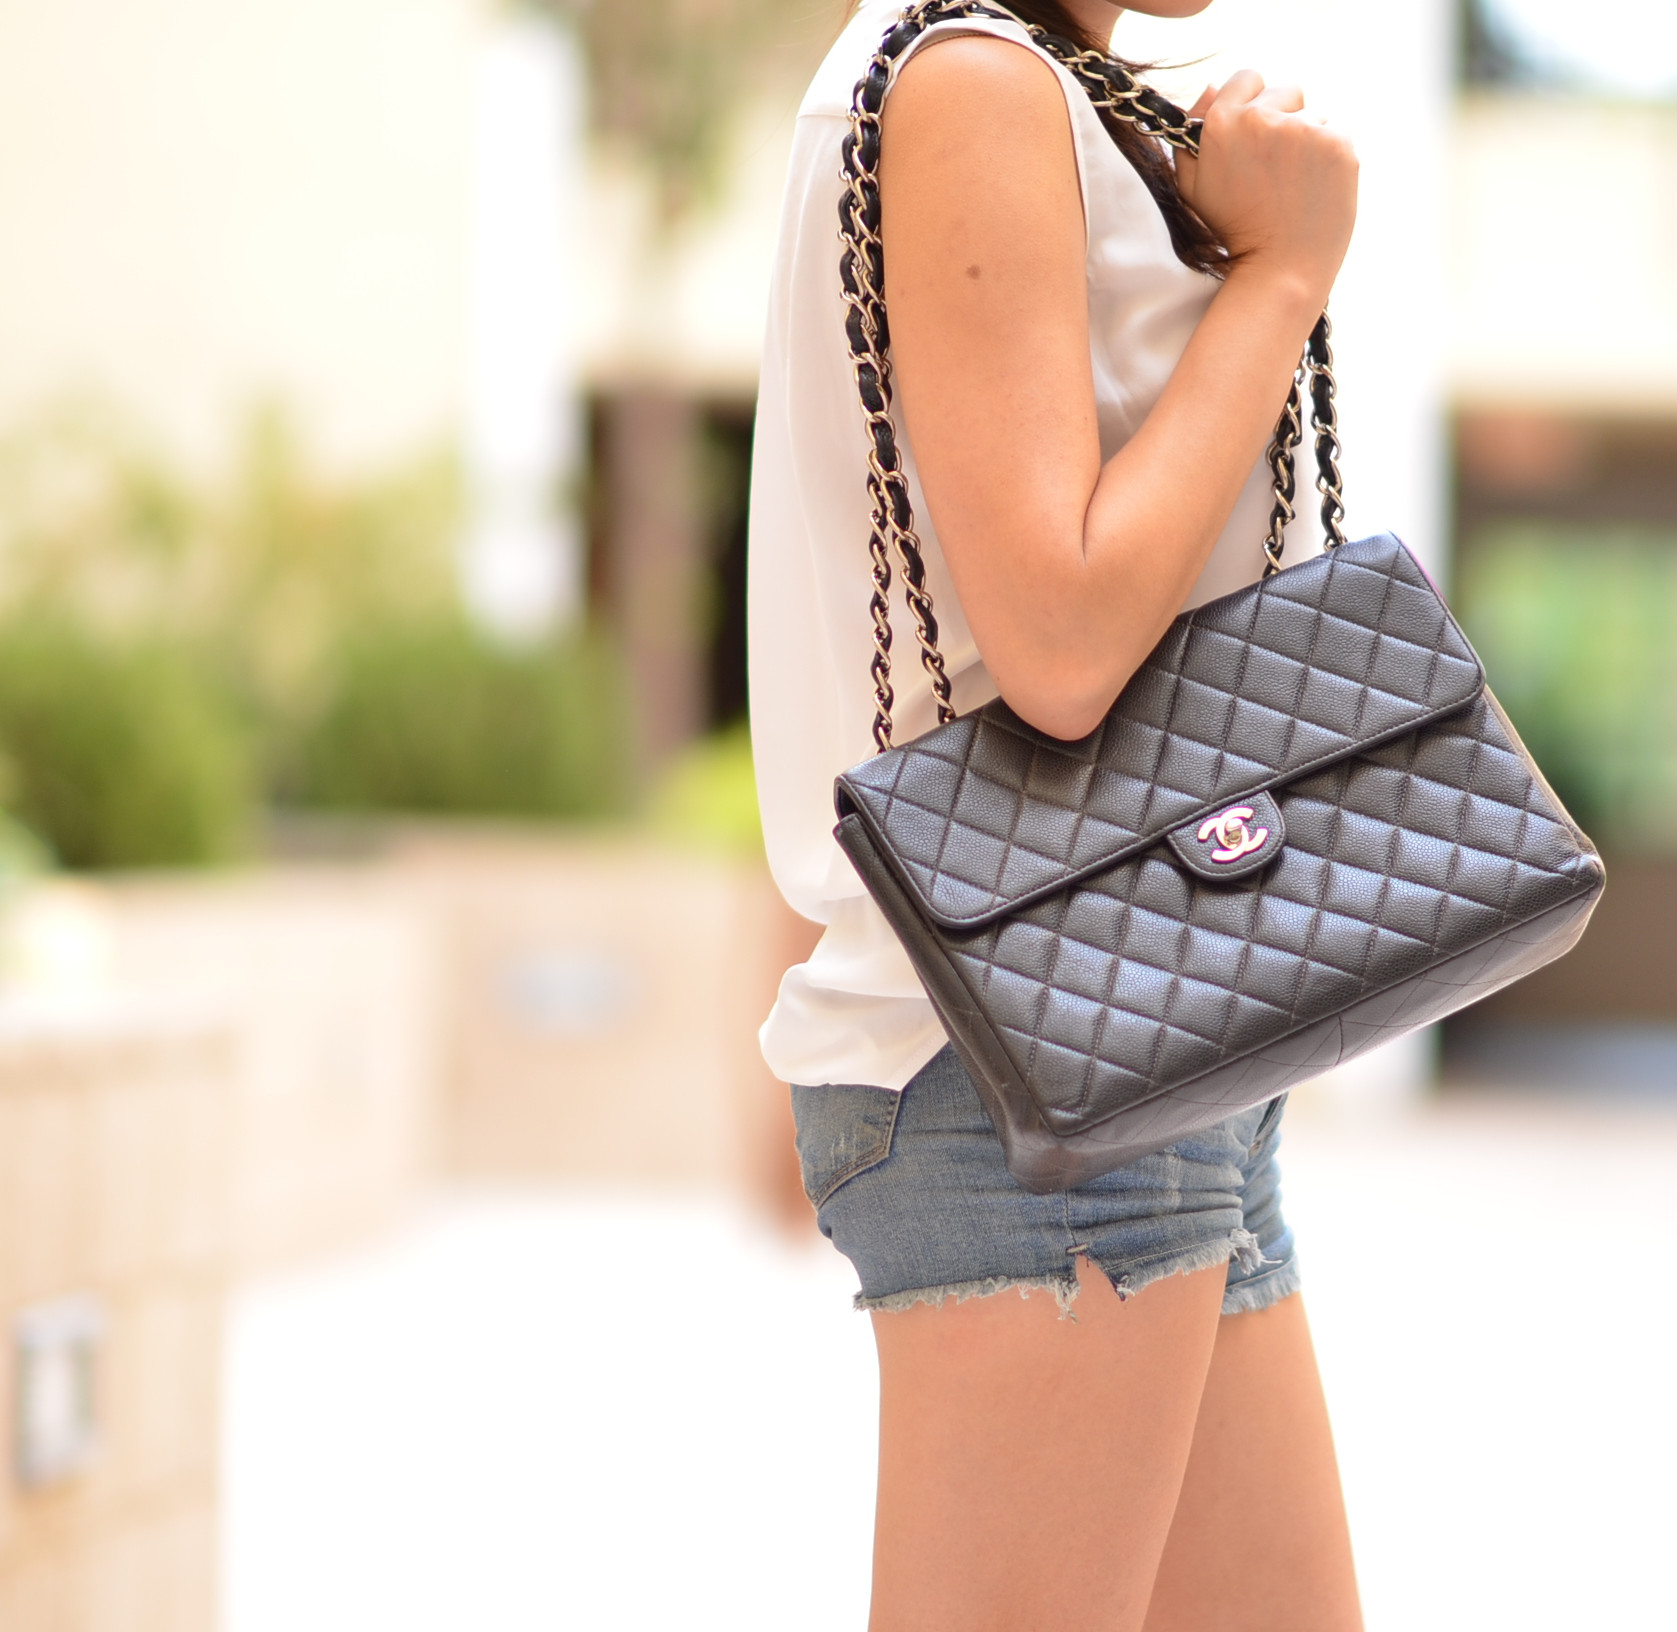 75b125f8362c07 Outfit with Black Chanel Caviar Classic Jumbo Flap Bag | Lollipuff